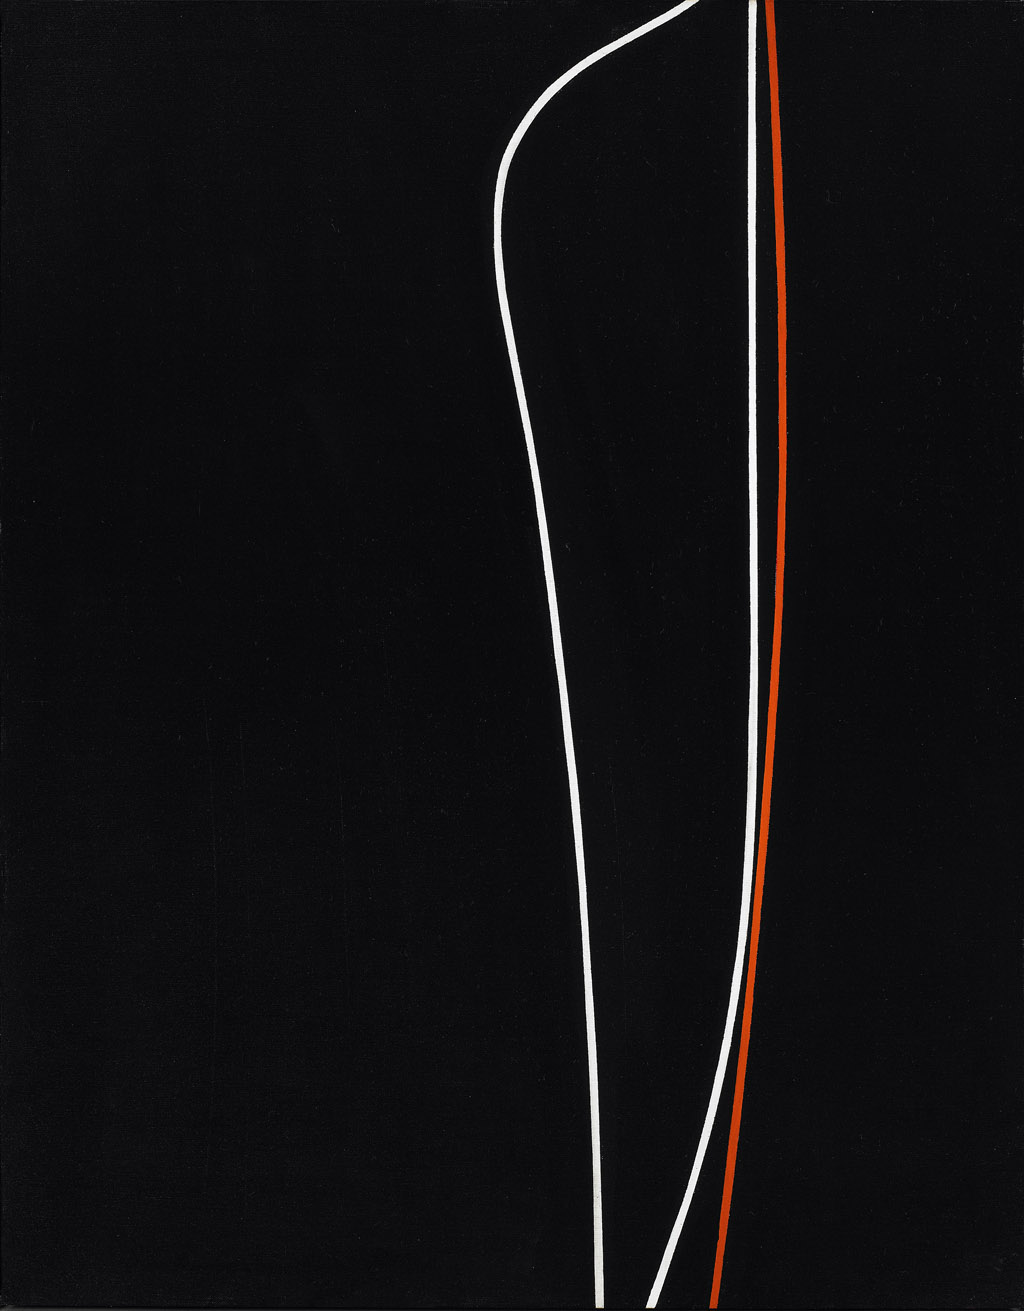 Untitled , 1977  acrylic on canvas 30 x 24 inches; 76.2 x 61 centimeters